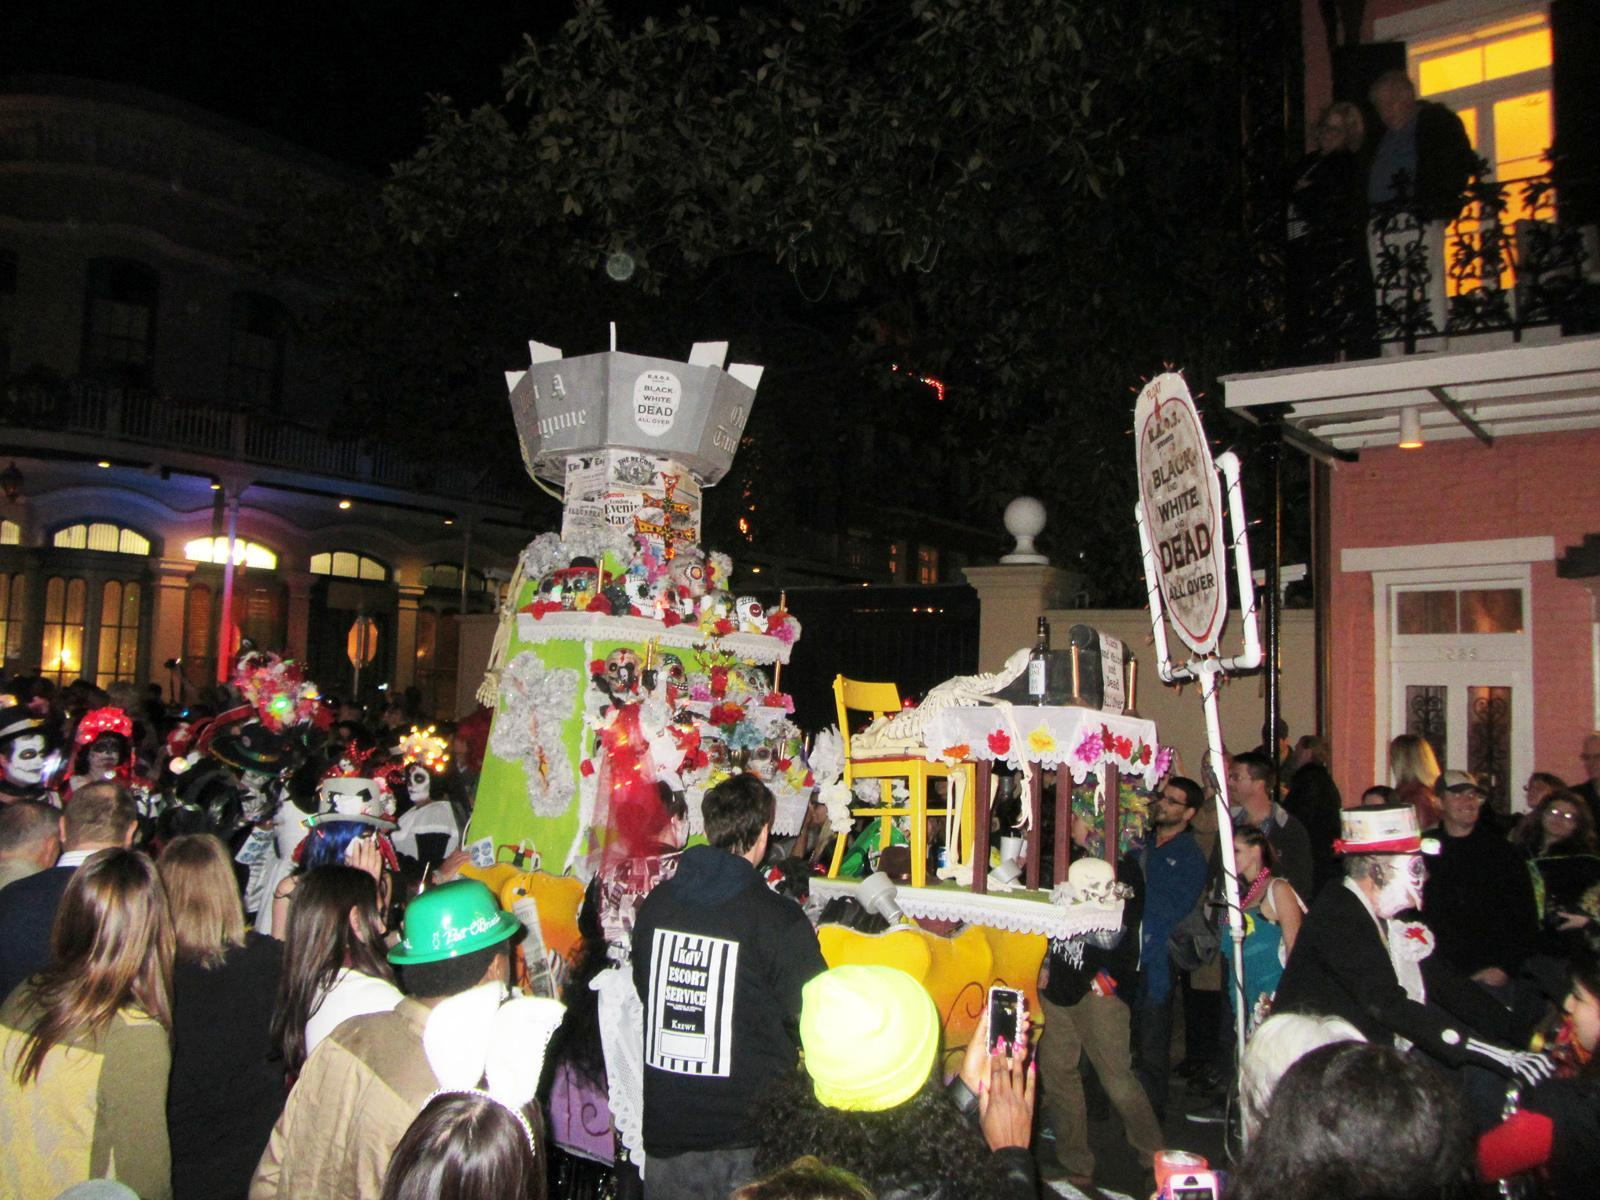 """Parade-goers surround a Krewe du Vieux float which criticizes the newspaper's recent decision to publish thrice weekly as opposed to daily. The float refers to the newspaper as """"The Times Prickayune"""" while calling it """"Black and White and Dead All Over."""